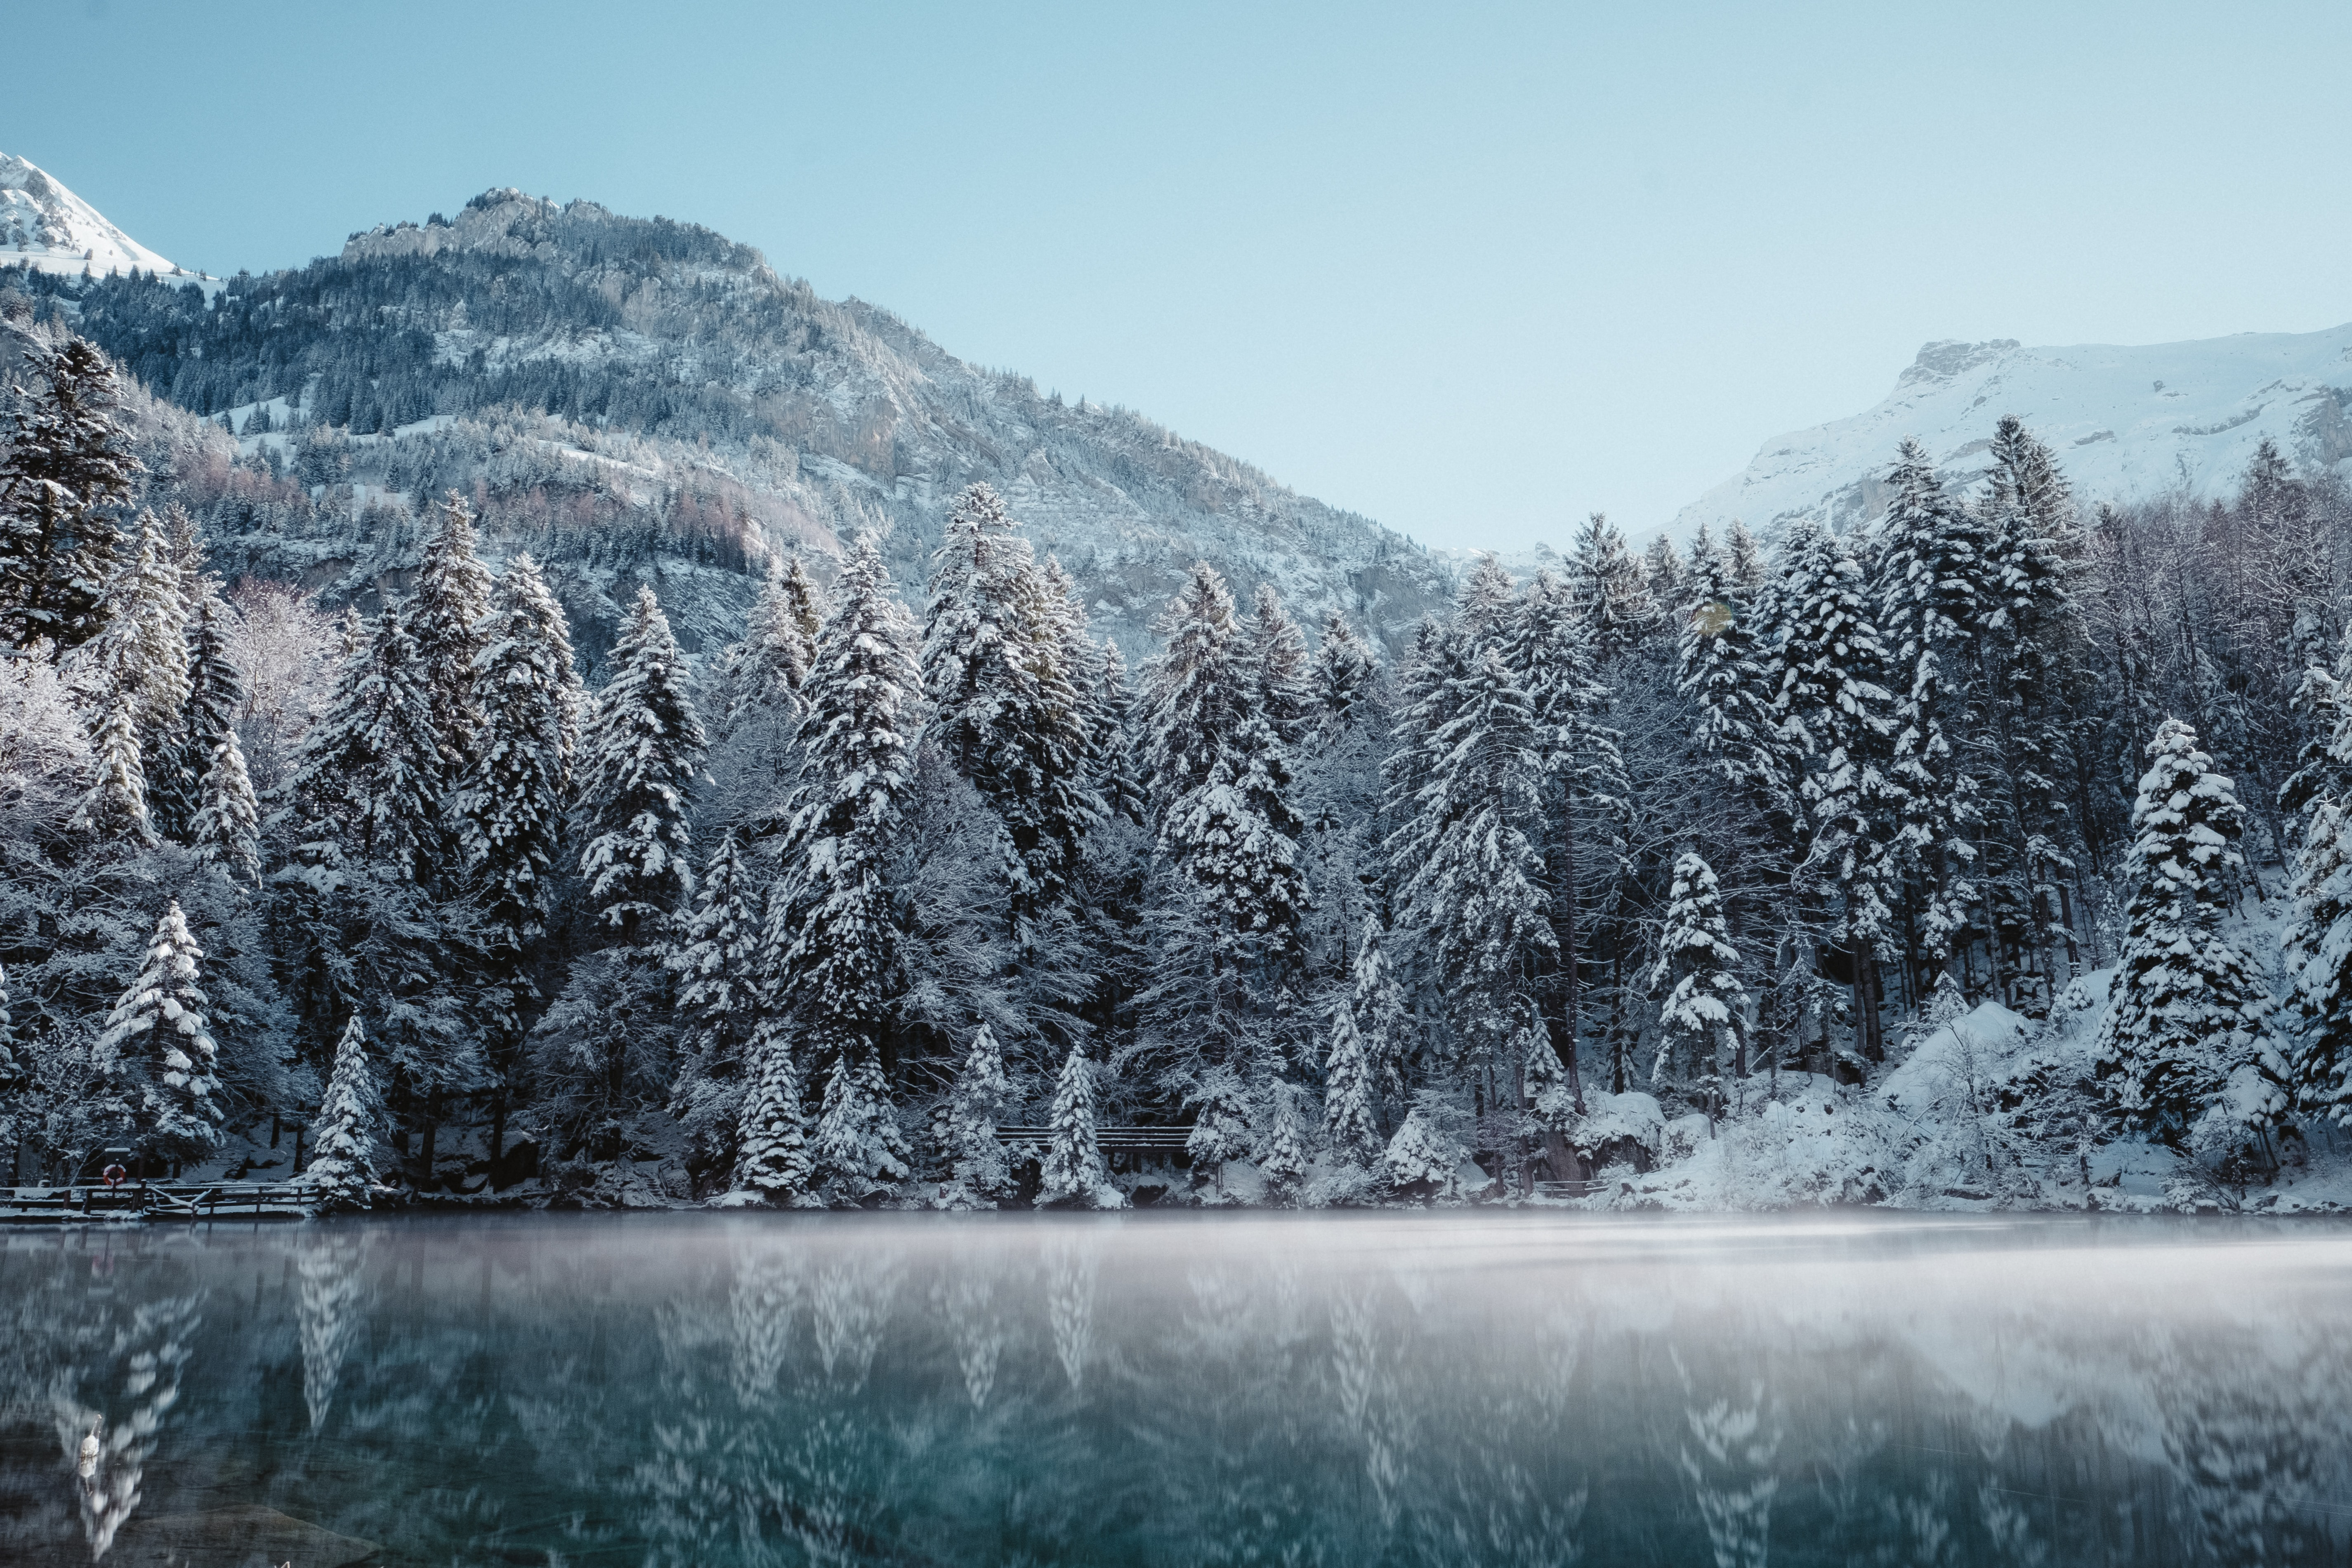 landscape photography of snowy mountain and body of water